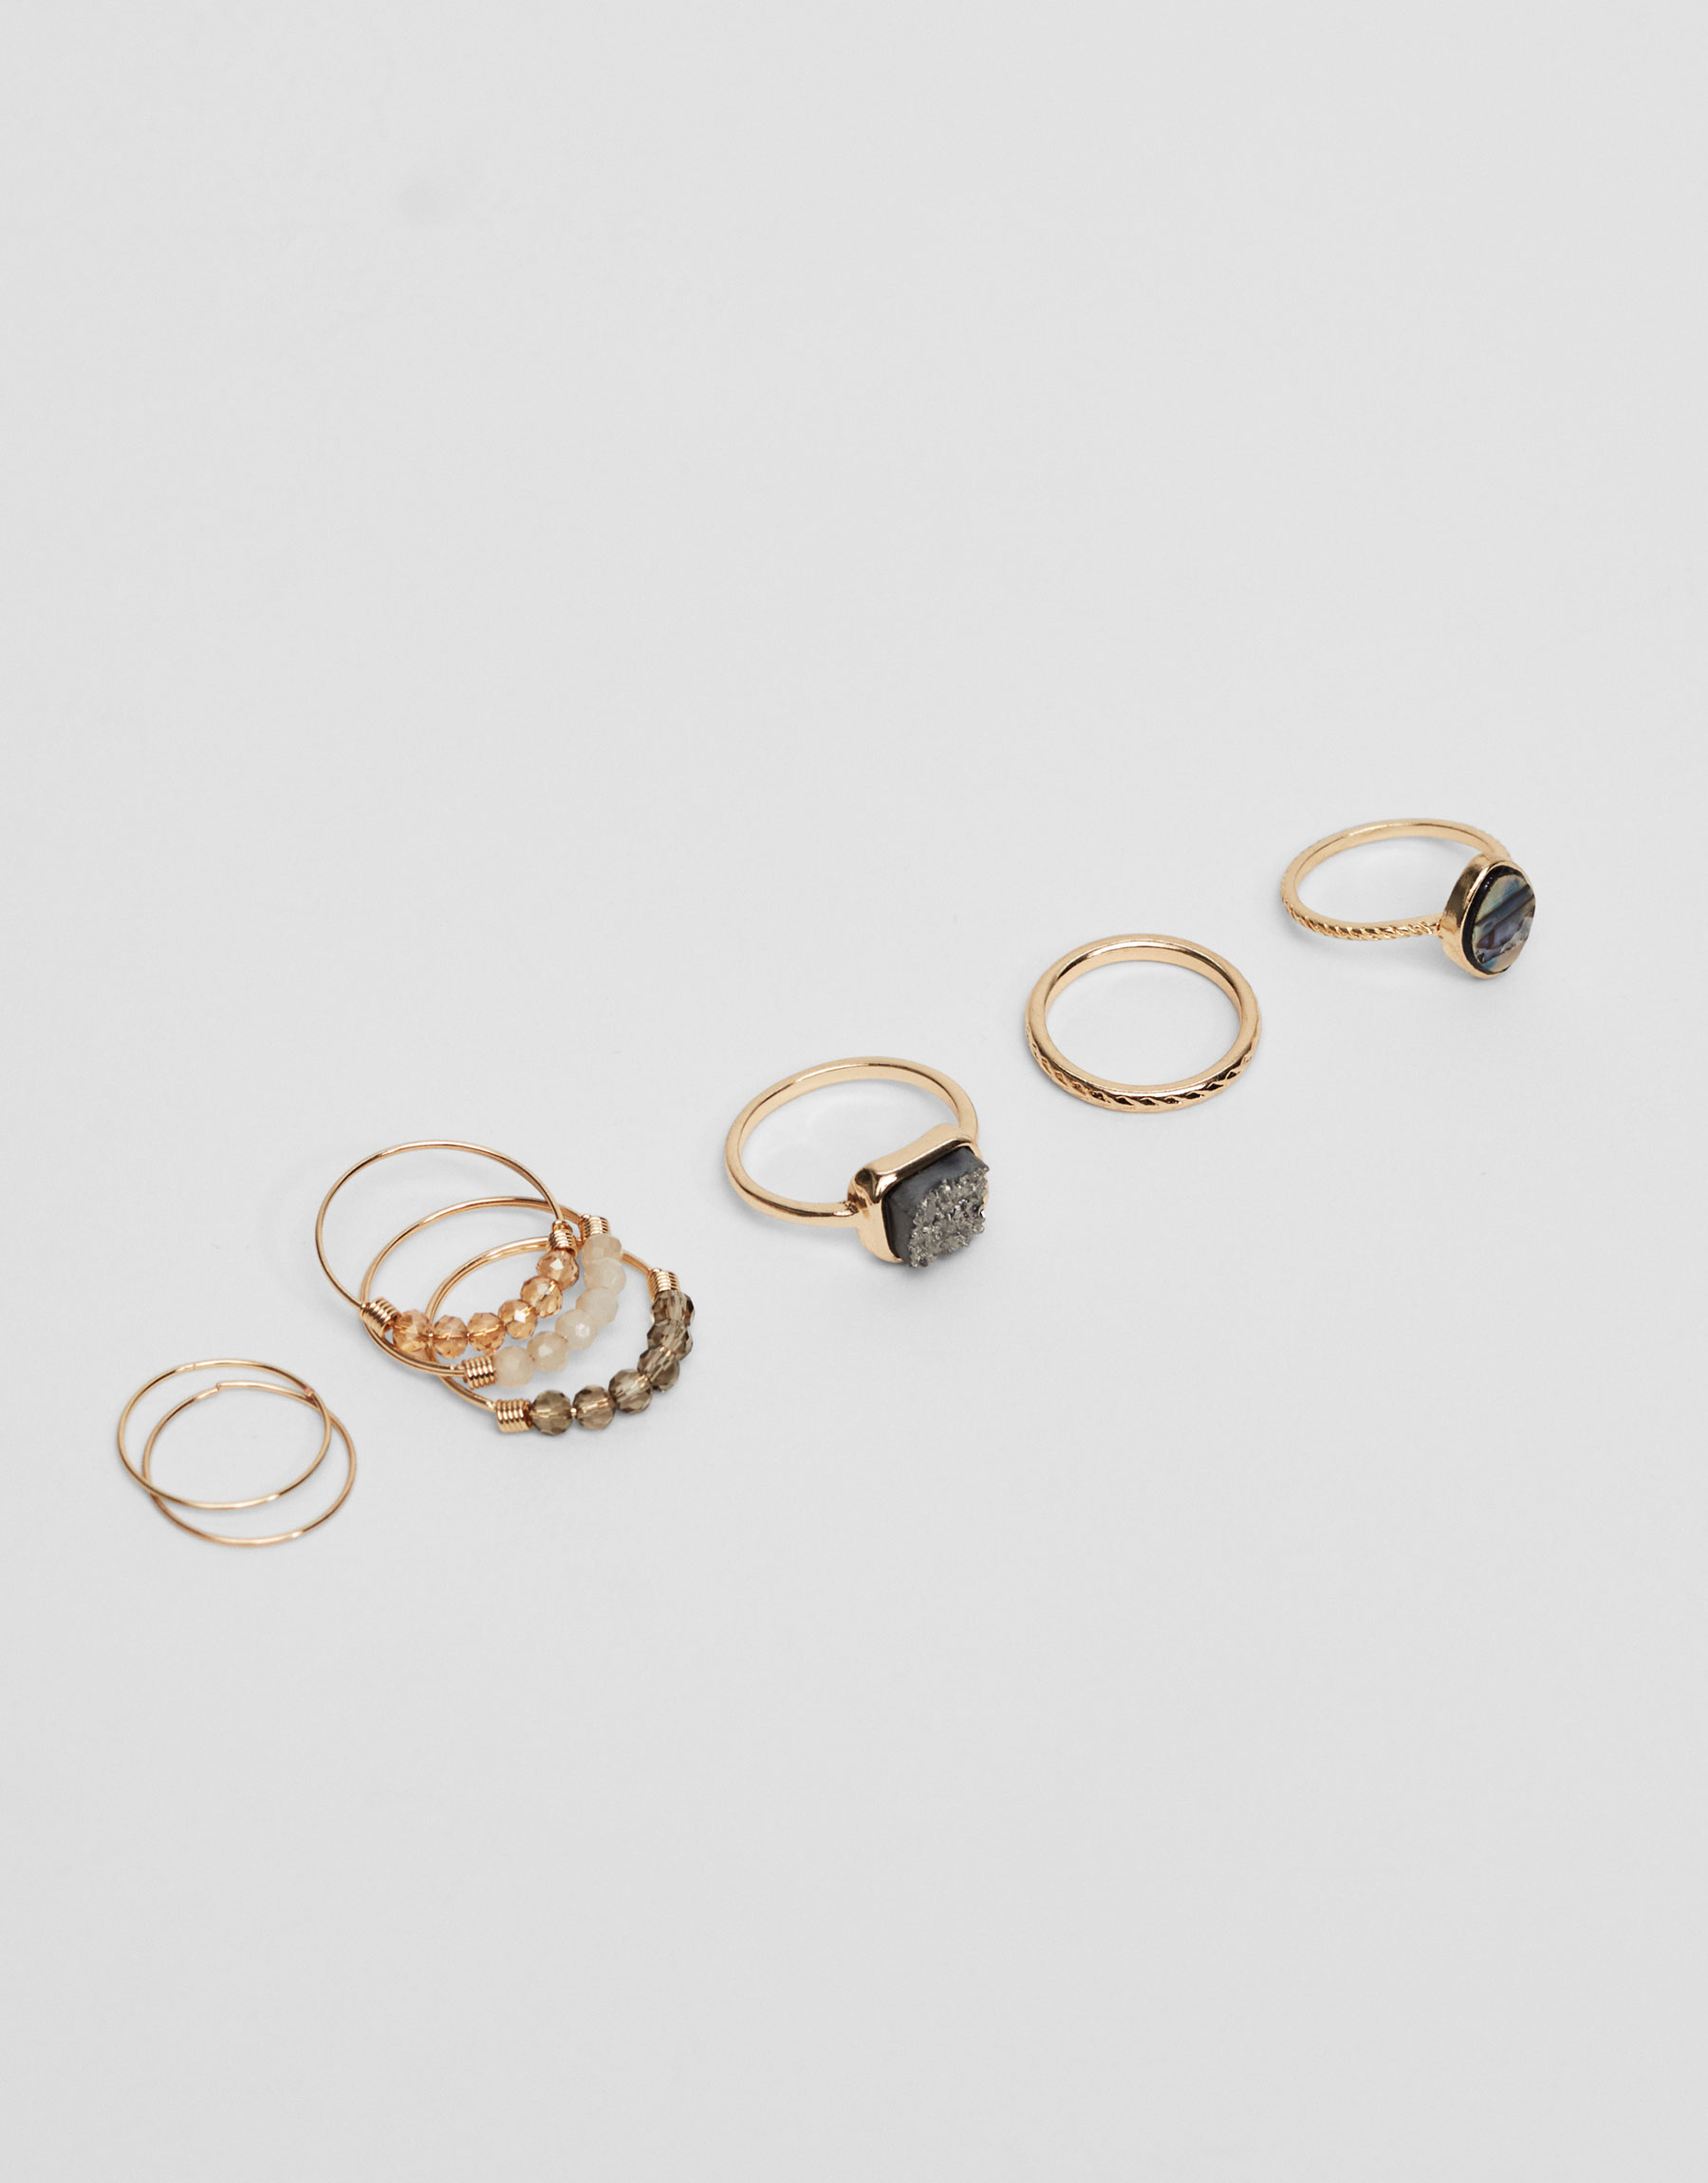 8-pack of rings